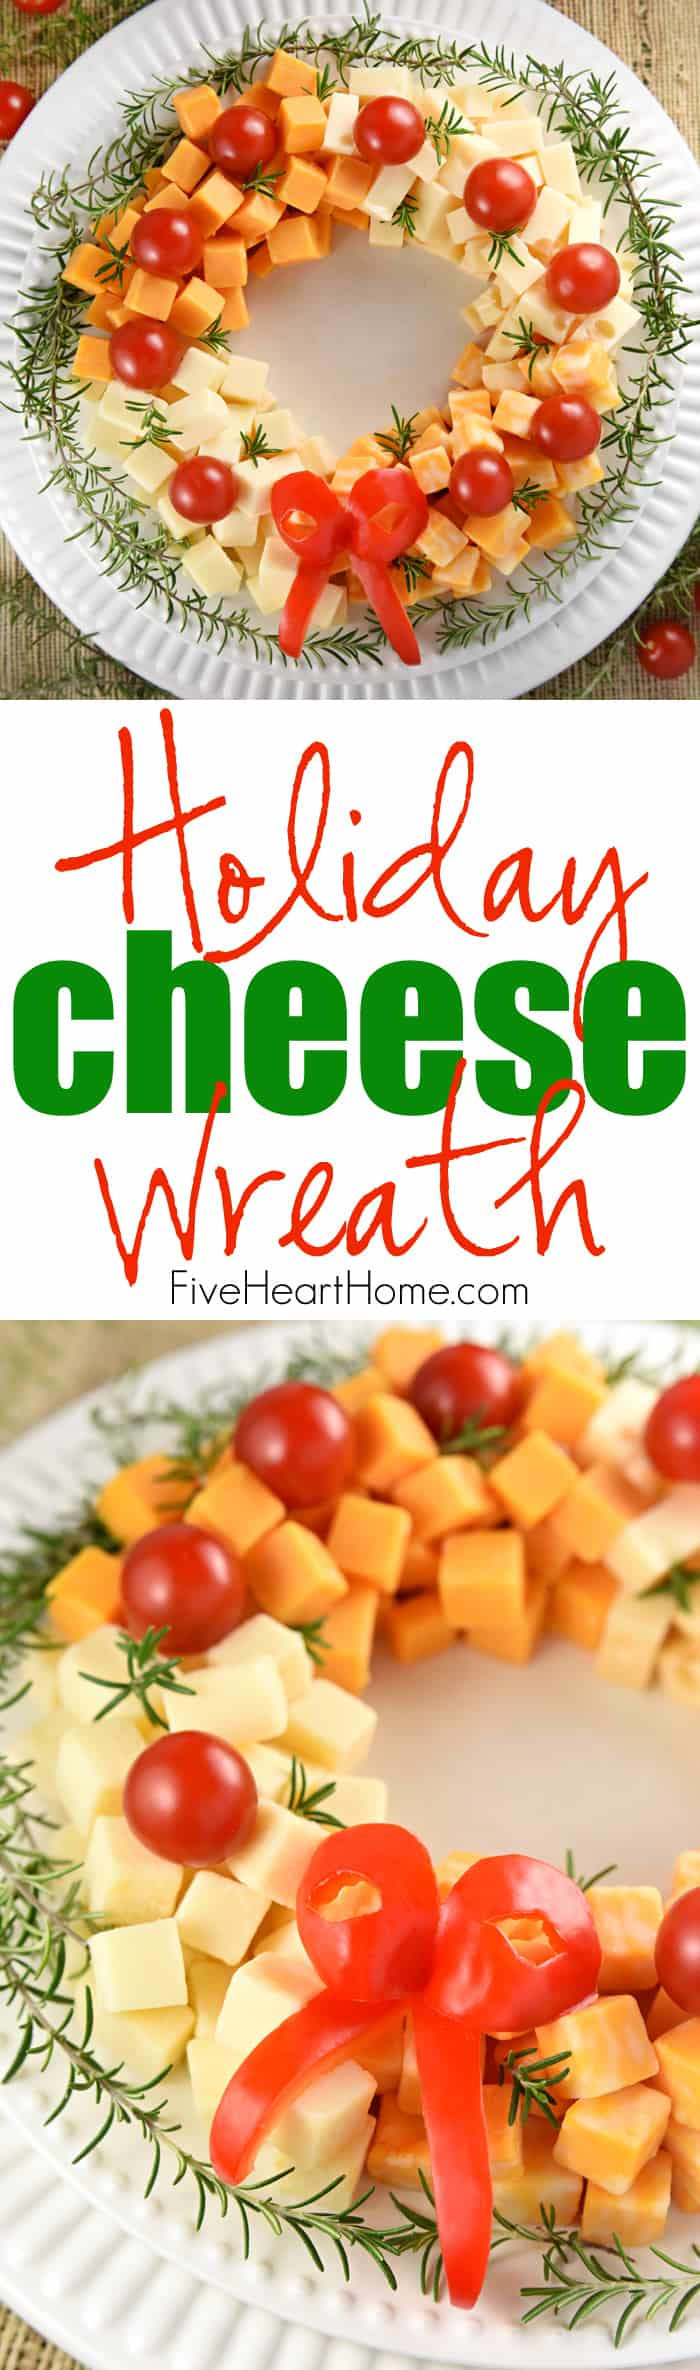 Cheese wreath for Christmas holidays.